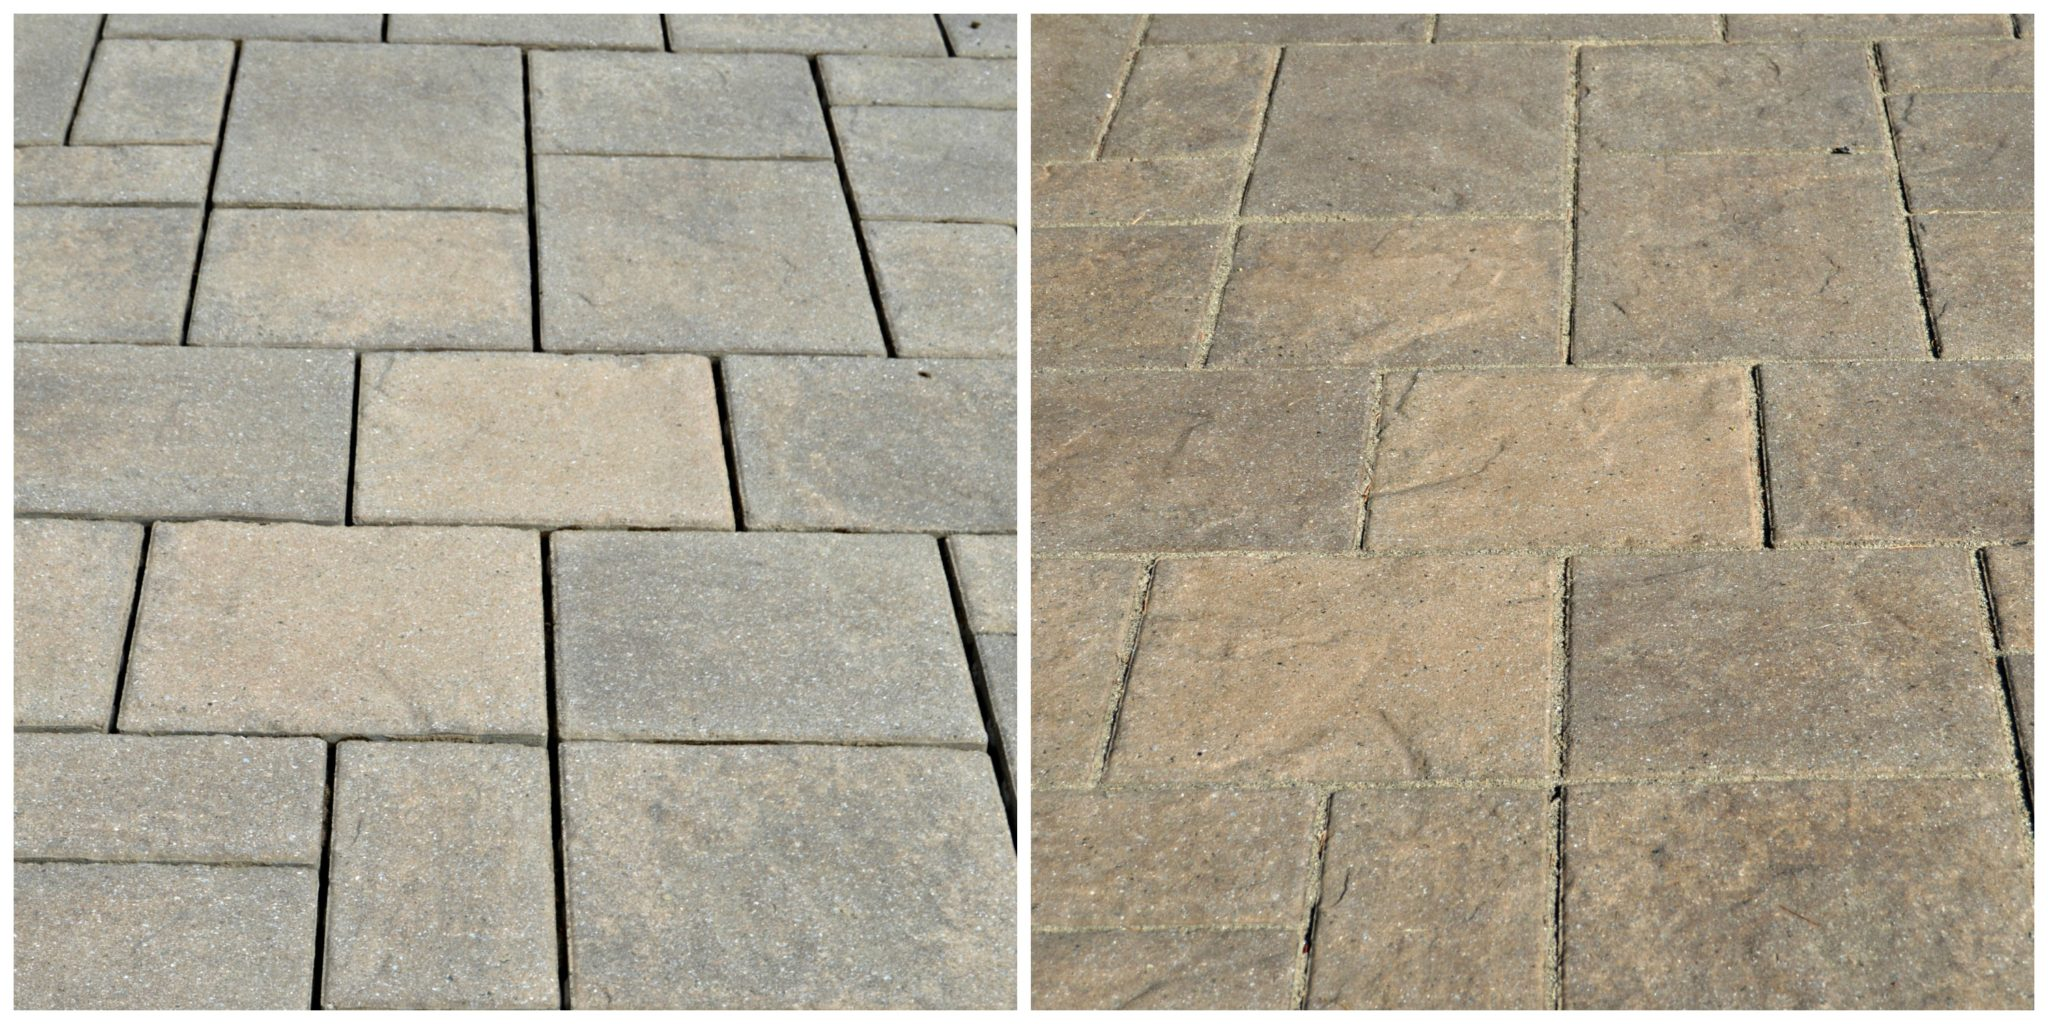 How To Seal Natural Stone Patio Designs